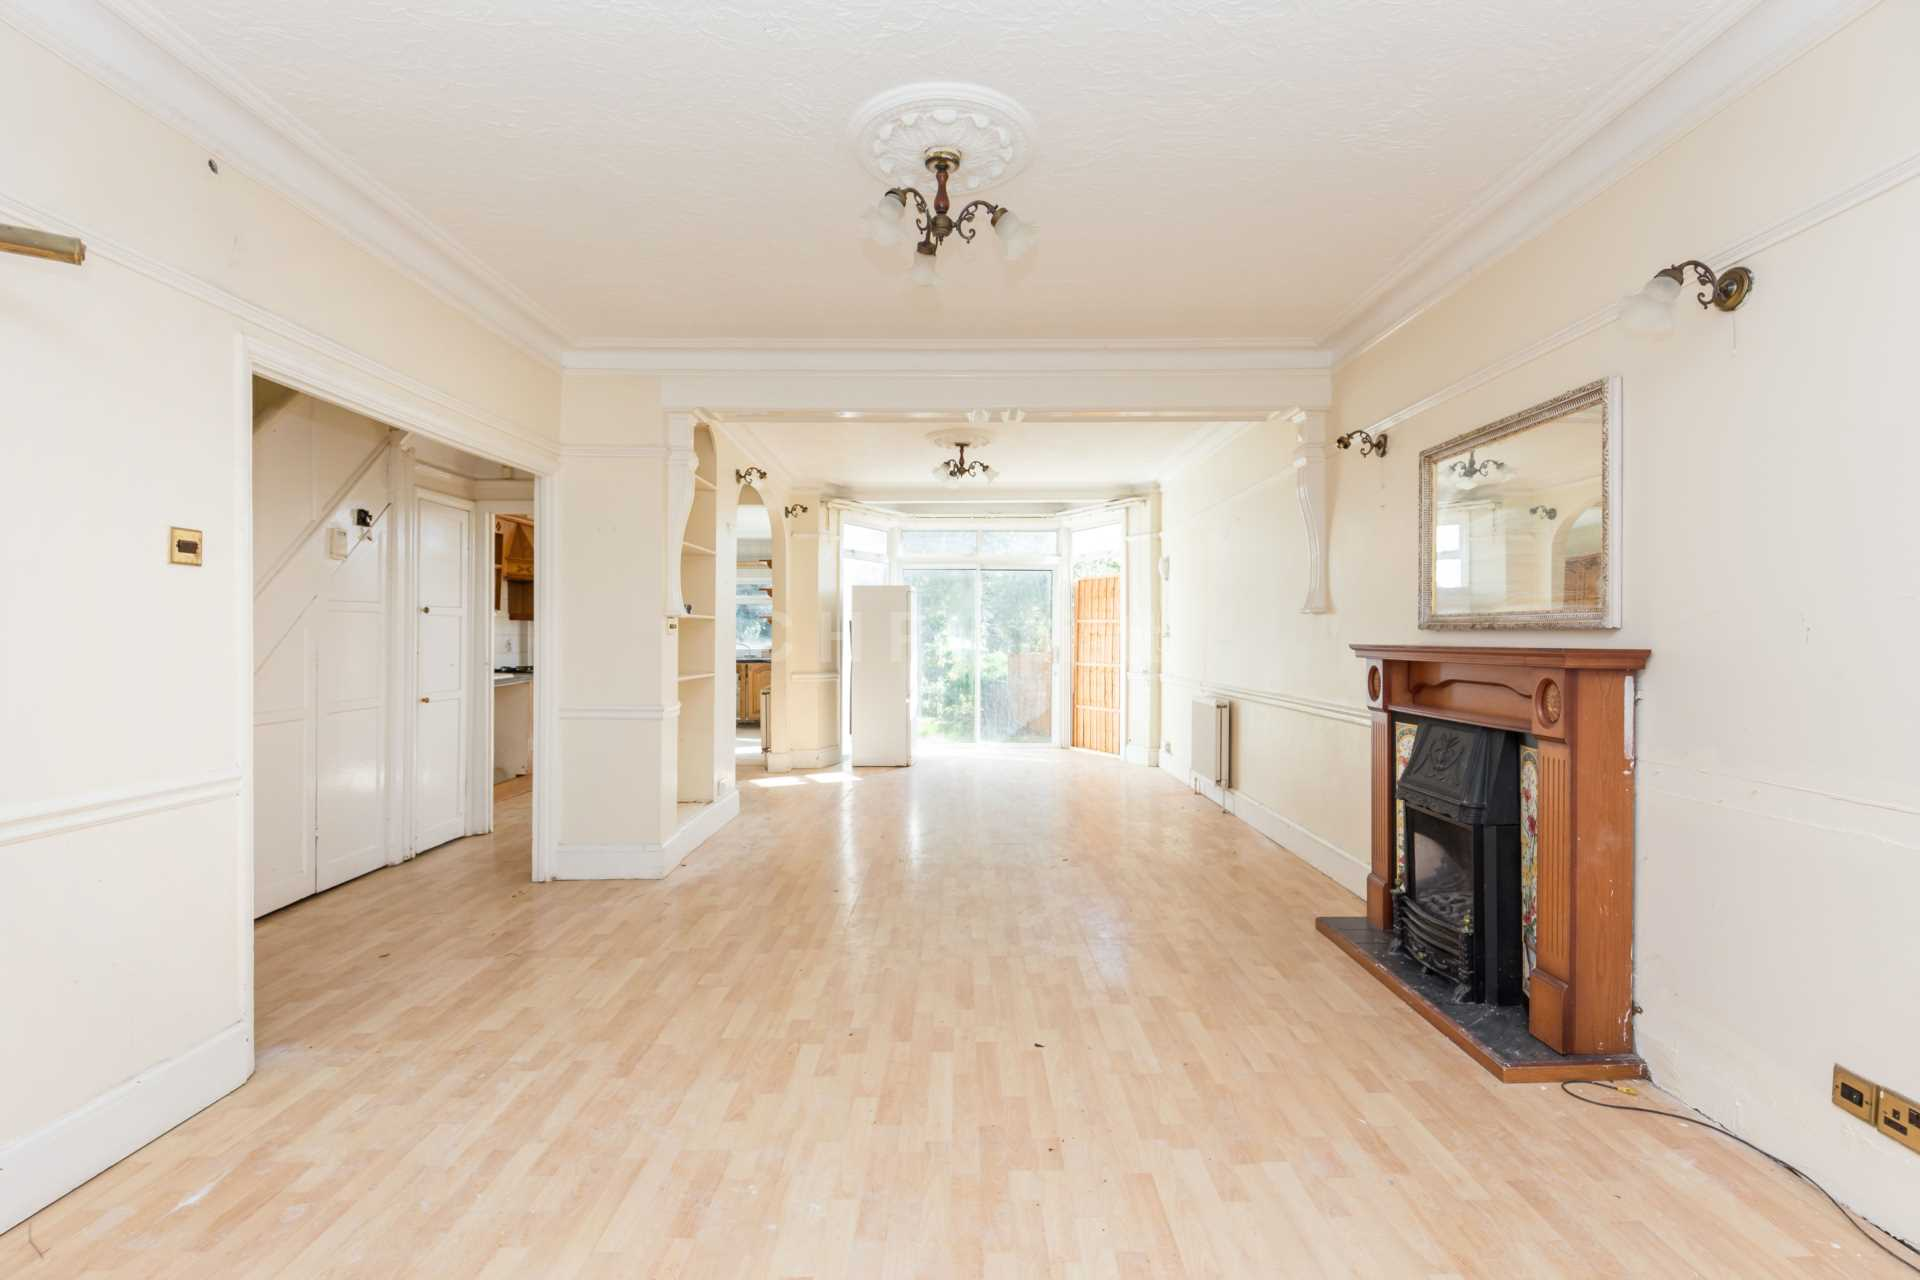 Halstead Road, Winchmore Hill, N21, Image 3